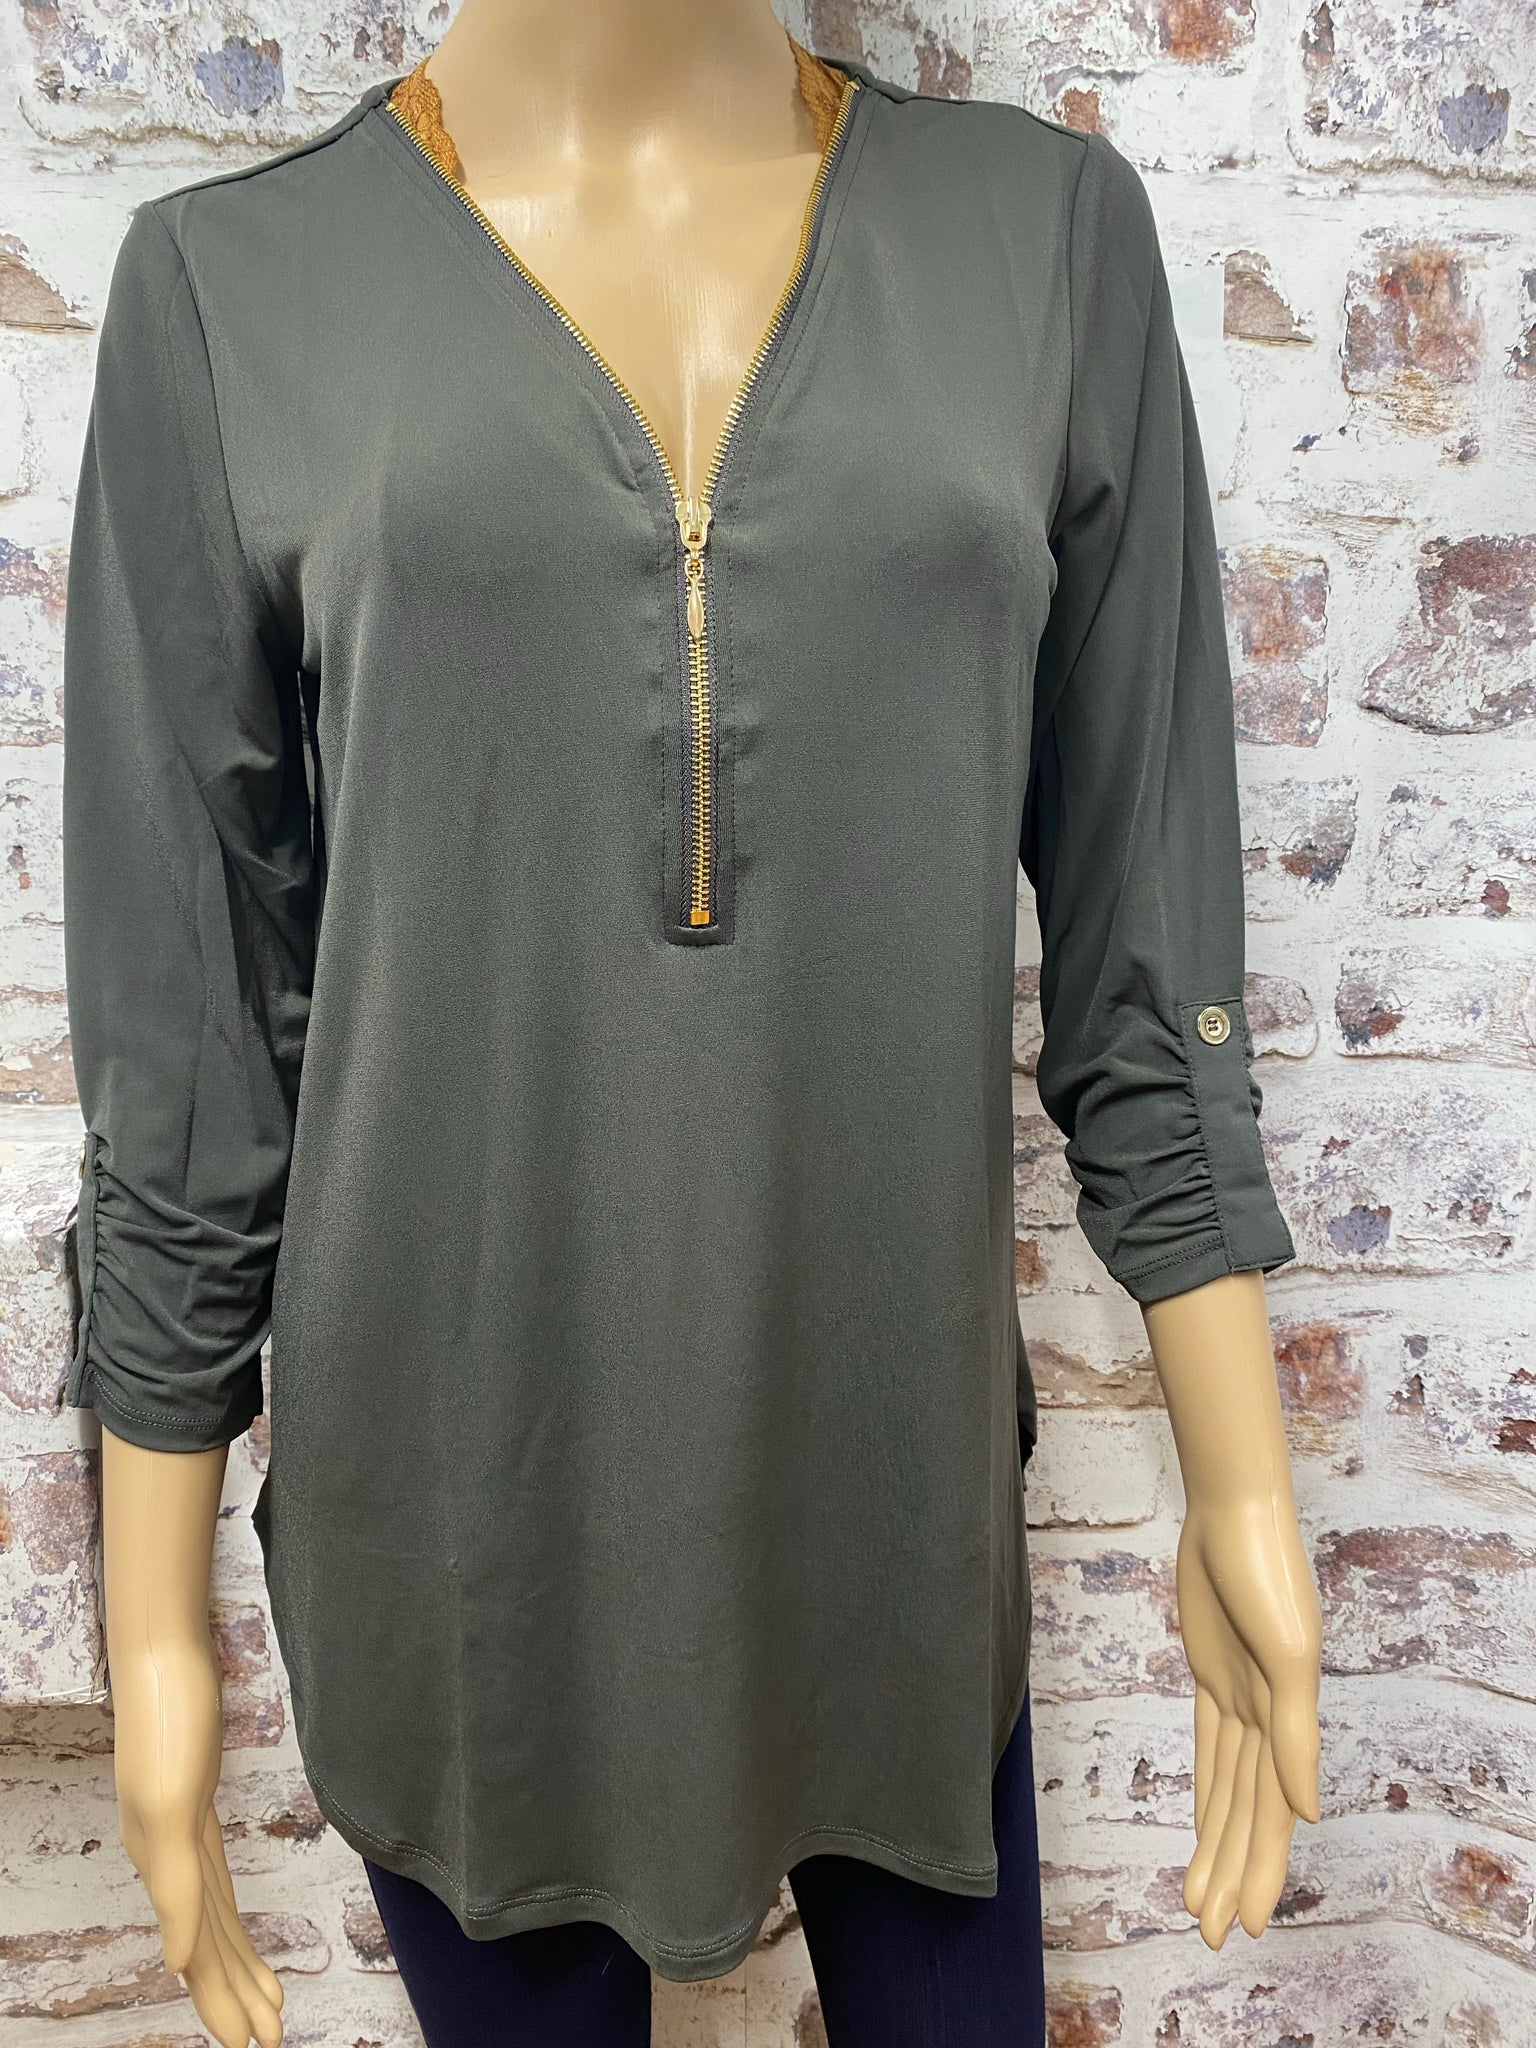 Charcoal 3/4 Sleeve Top with Zipper Accent